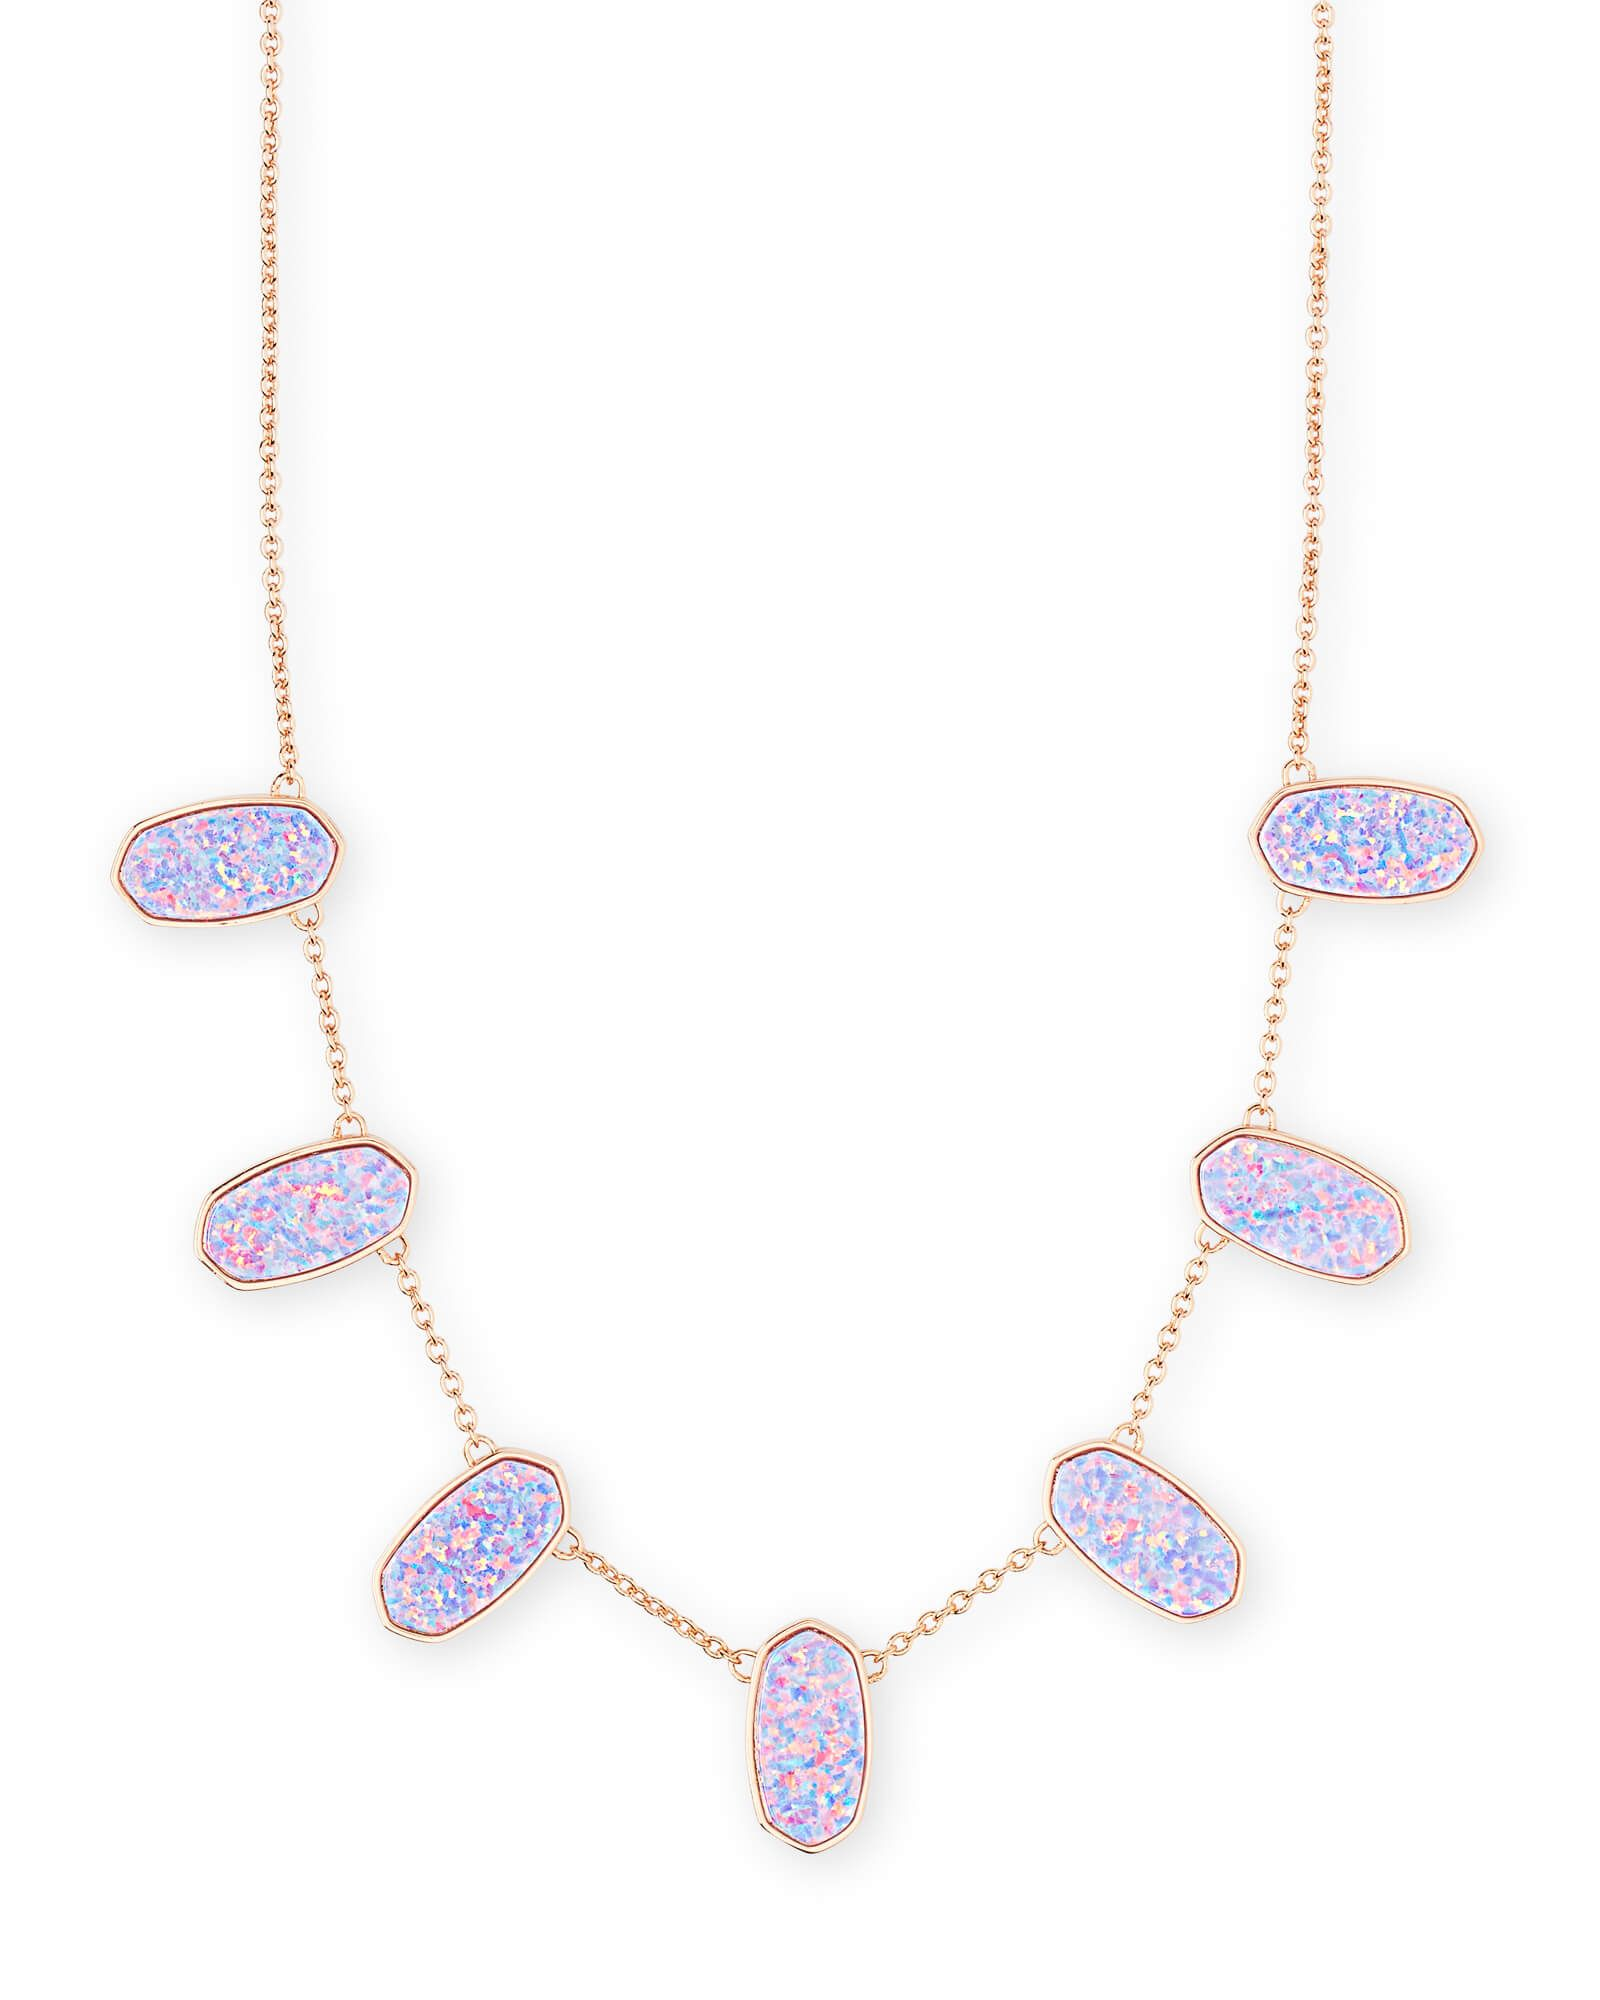 Meadow Rose Gold Statement Necklace In Lavender Kyocera Opal Kendra Scott Gold Collar Necklace Rose Gold Statement Necklace Kyocera Opal